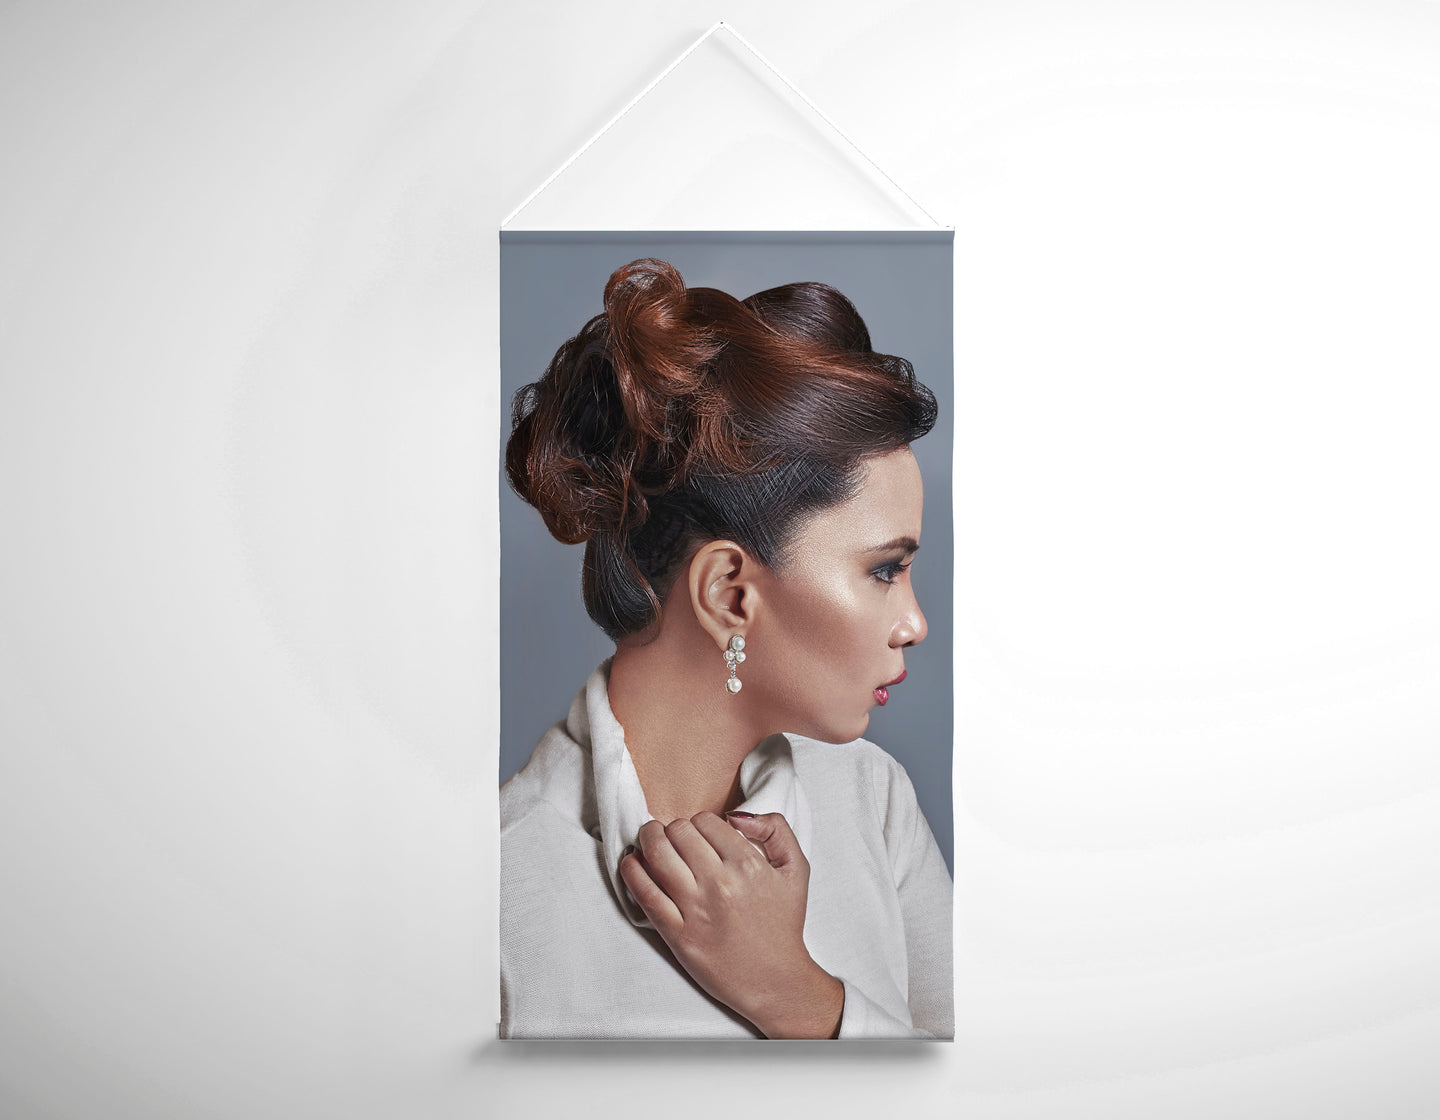 Salon Banner - Woman with Updo in Large Curls